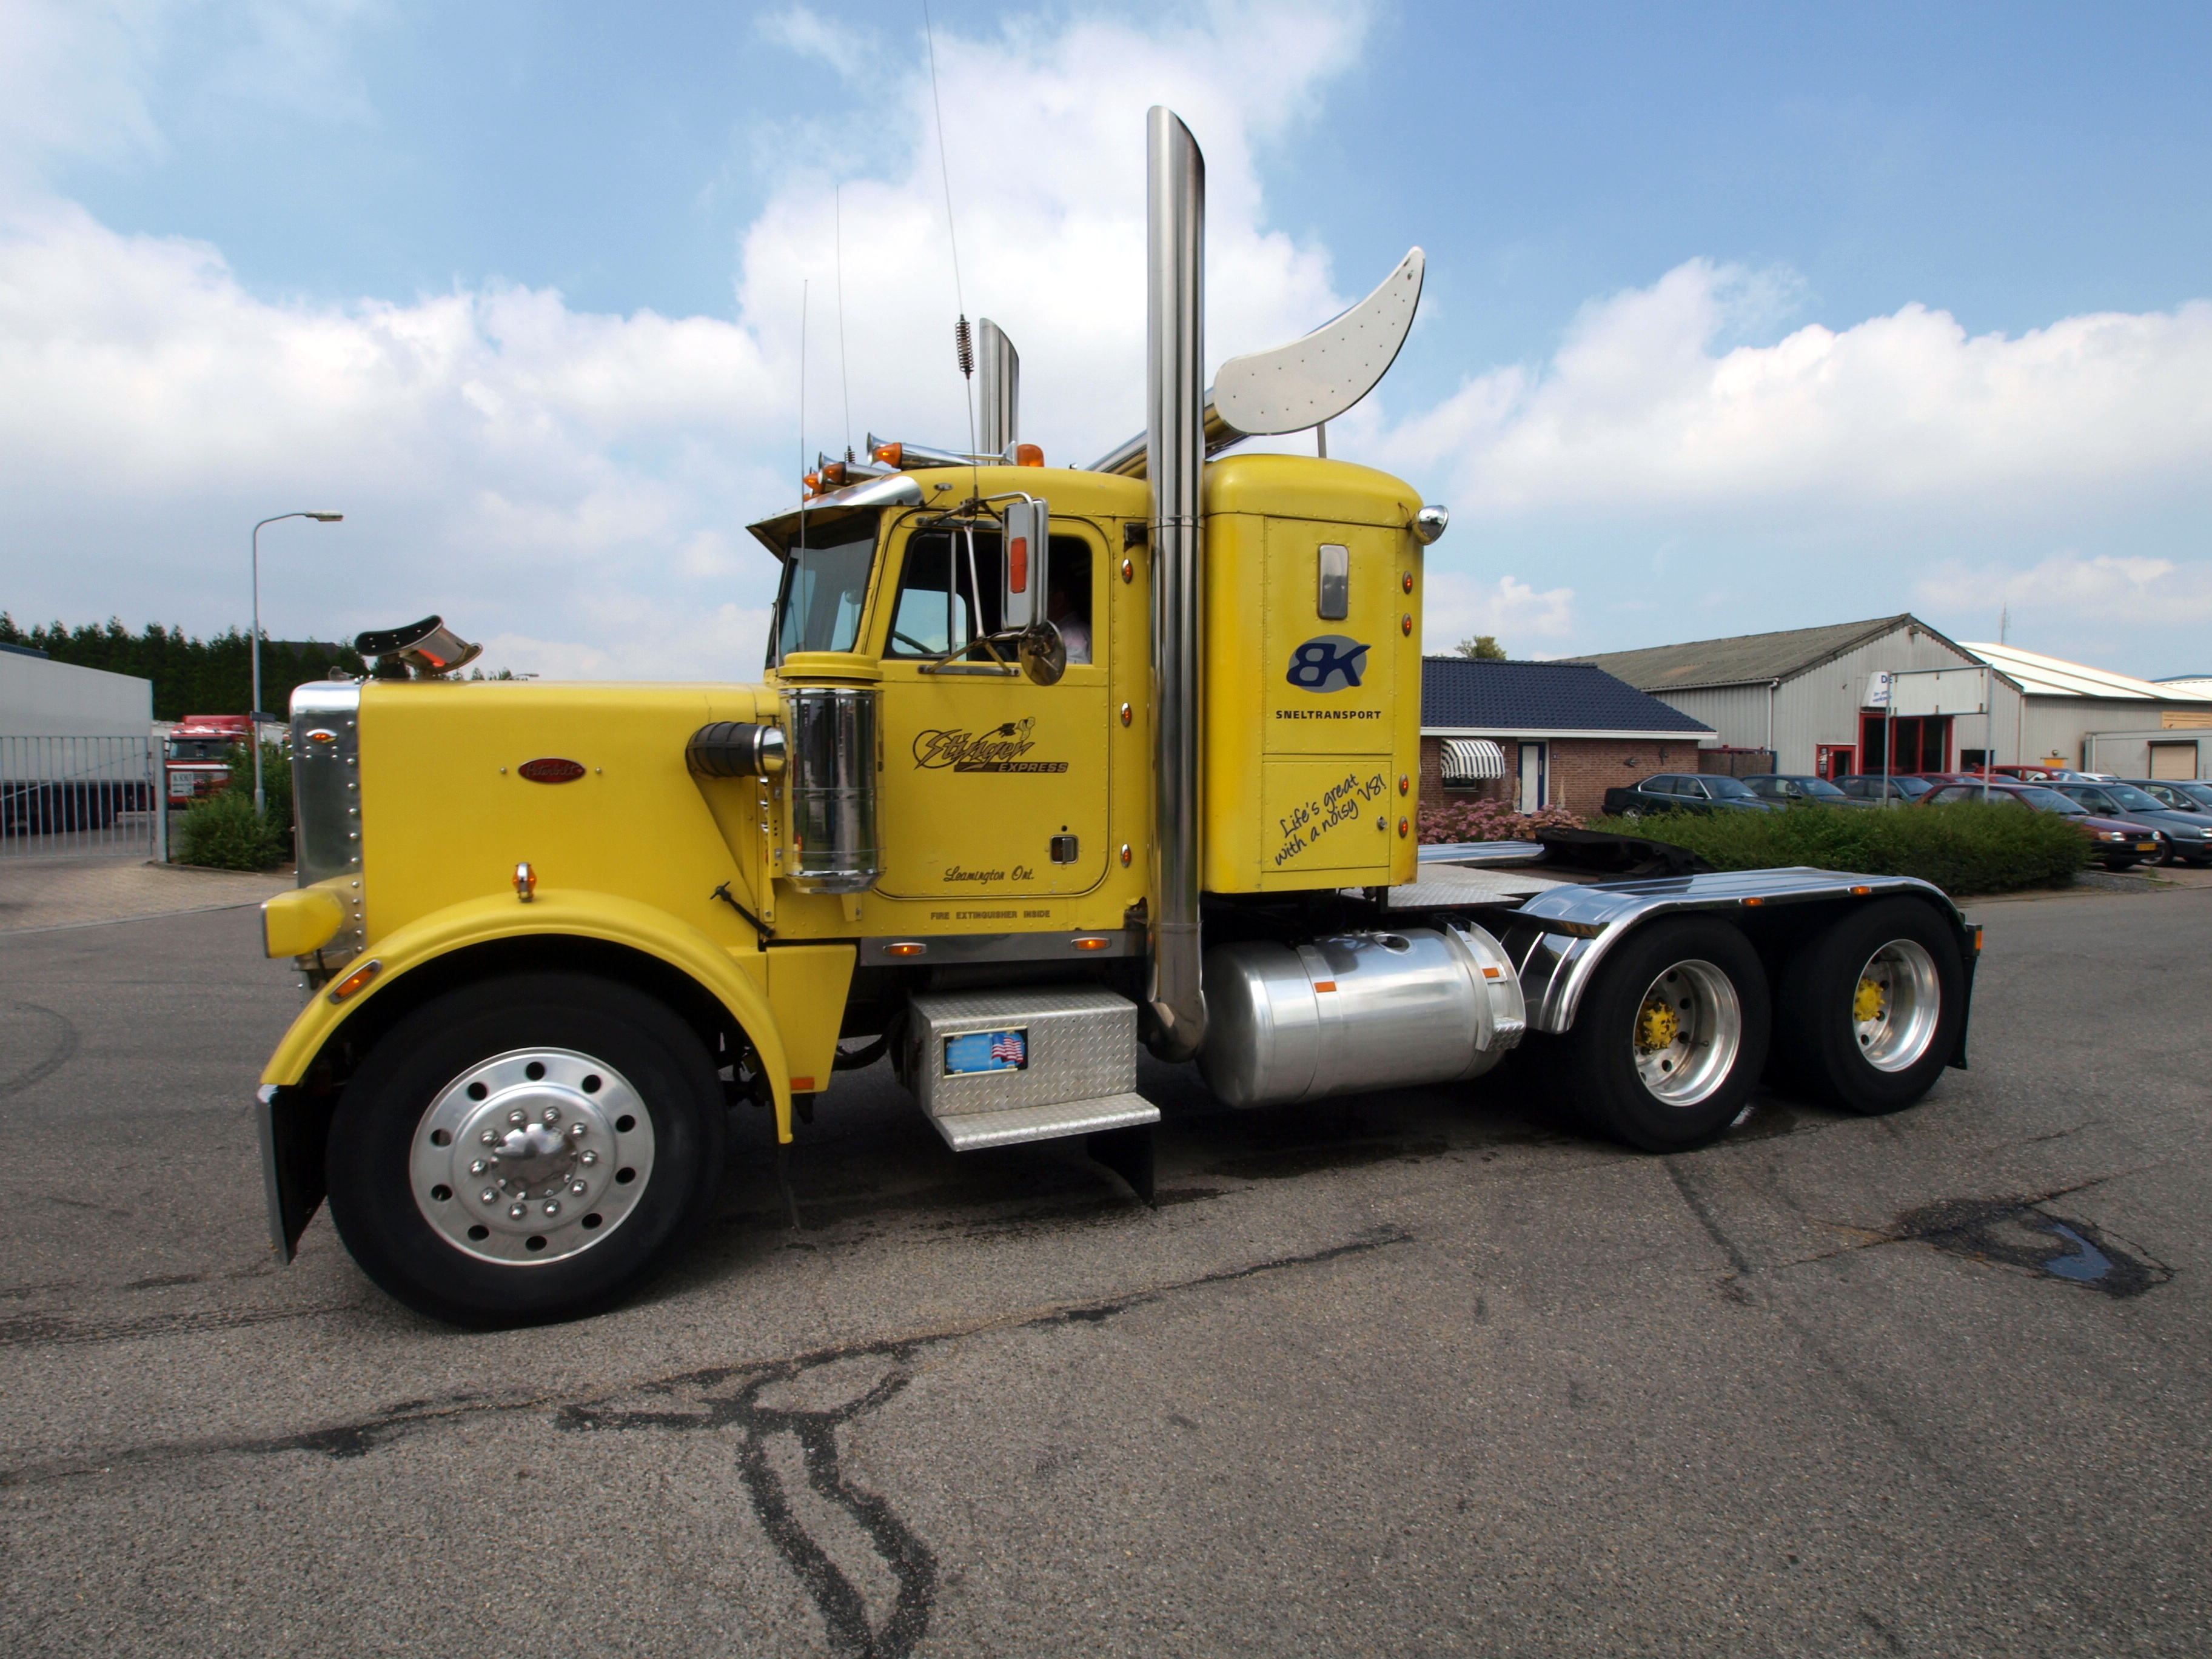 359 Peterbilt For Sale On Craigslist By Owner | Autos Post